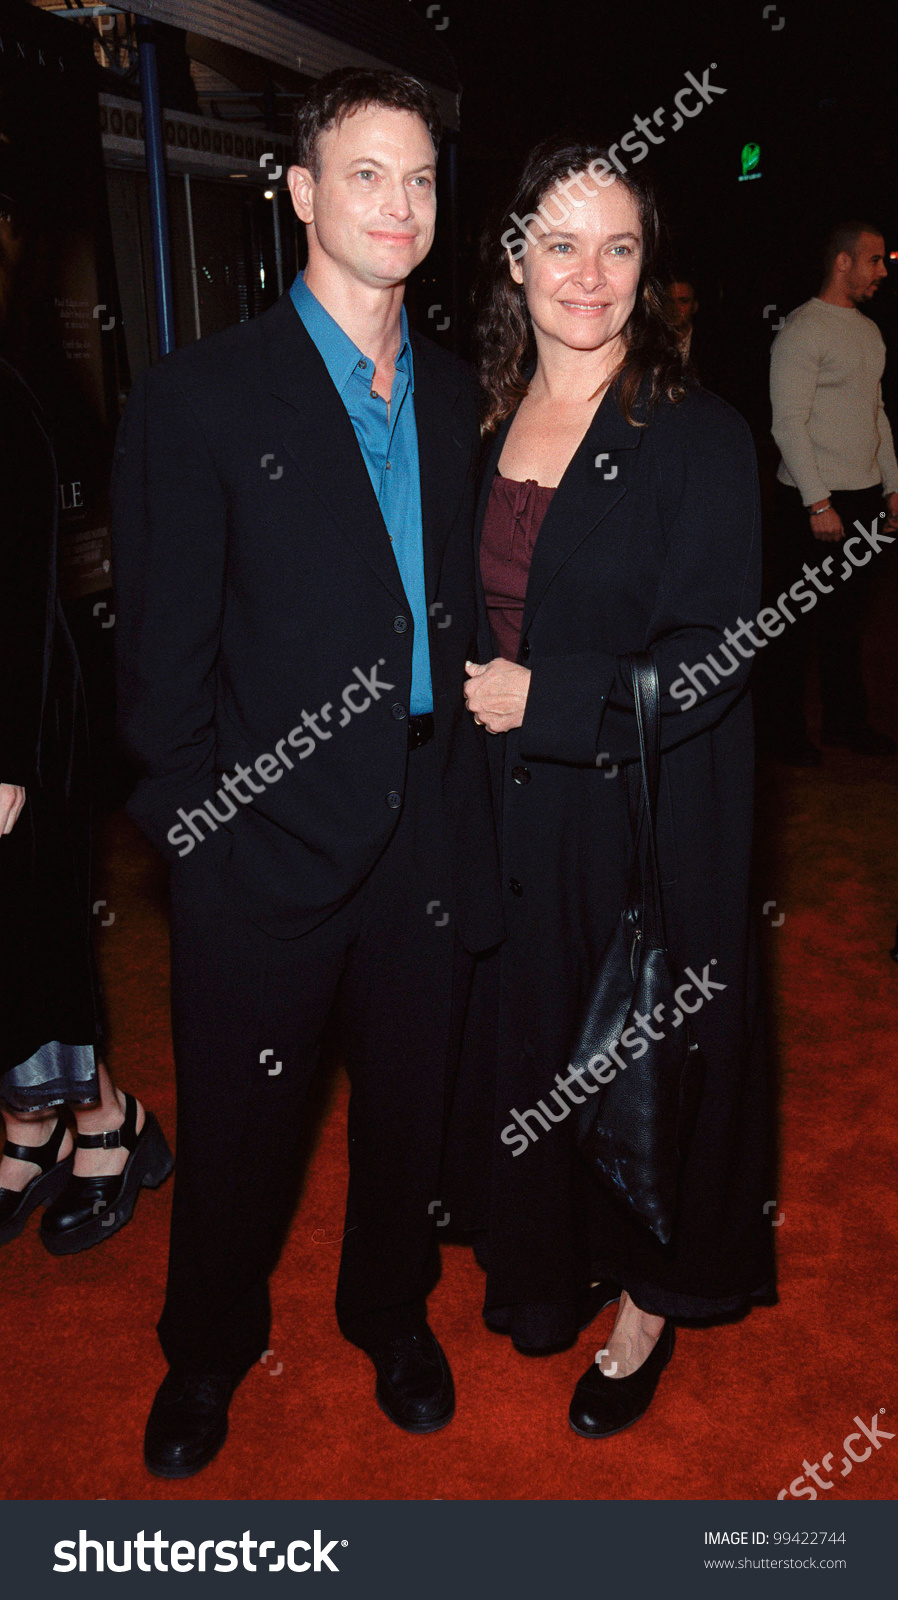 06dec99 Actor Gary Sinise Wife World Stock Photo 99422744.